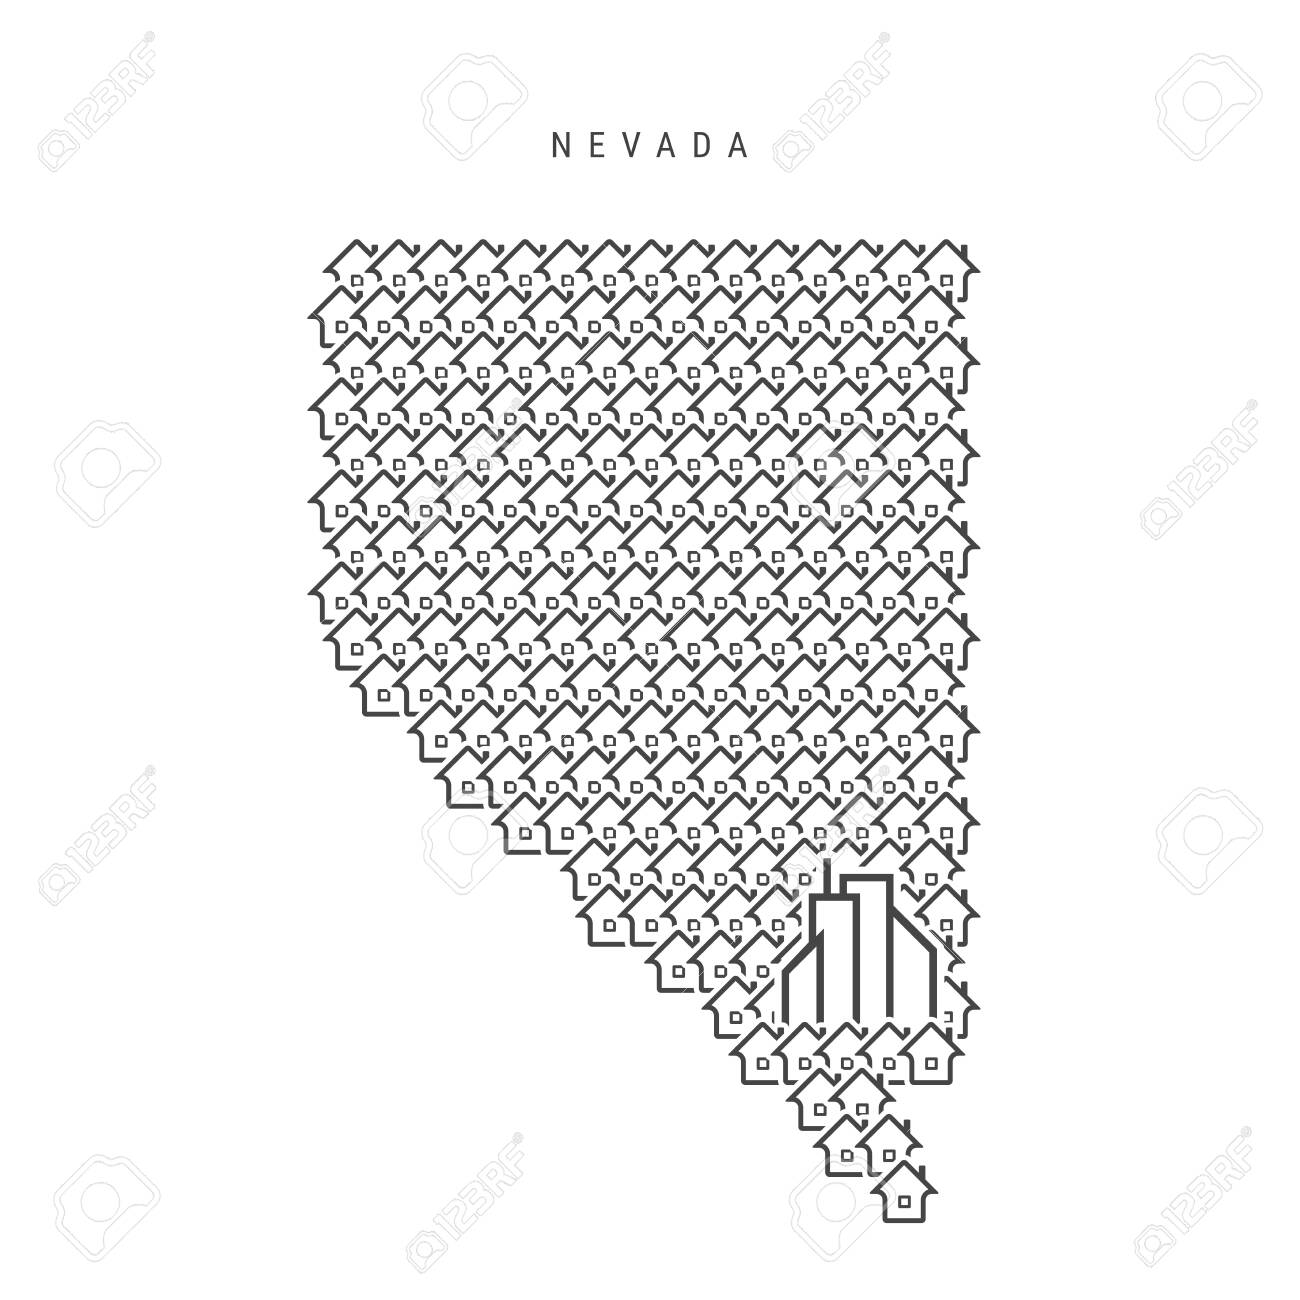 Nevada Real Estate Property Map Icons Of Houses In The Shape Royalty Free Cliparts Vectors And Stock Illustration Image 140121337